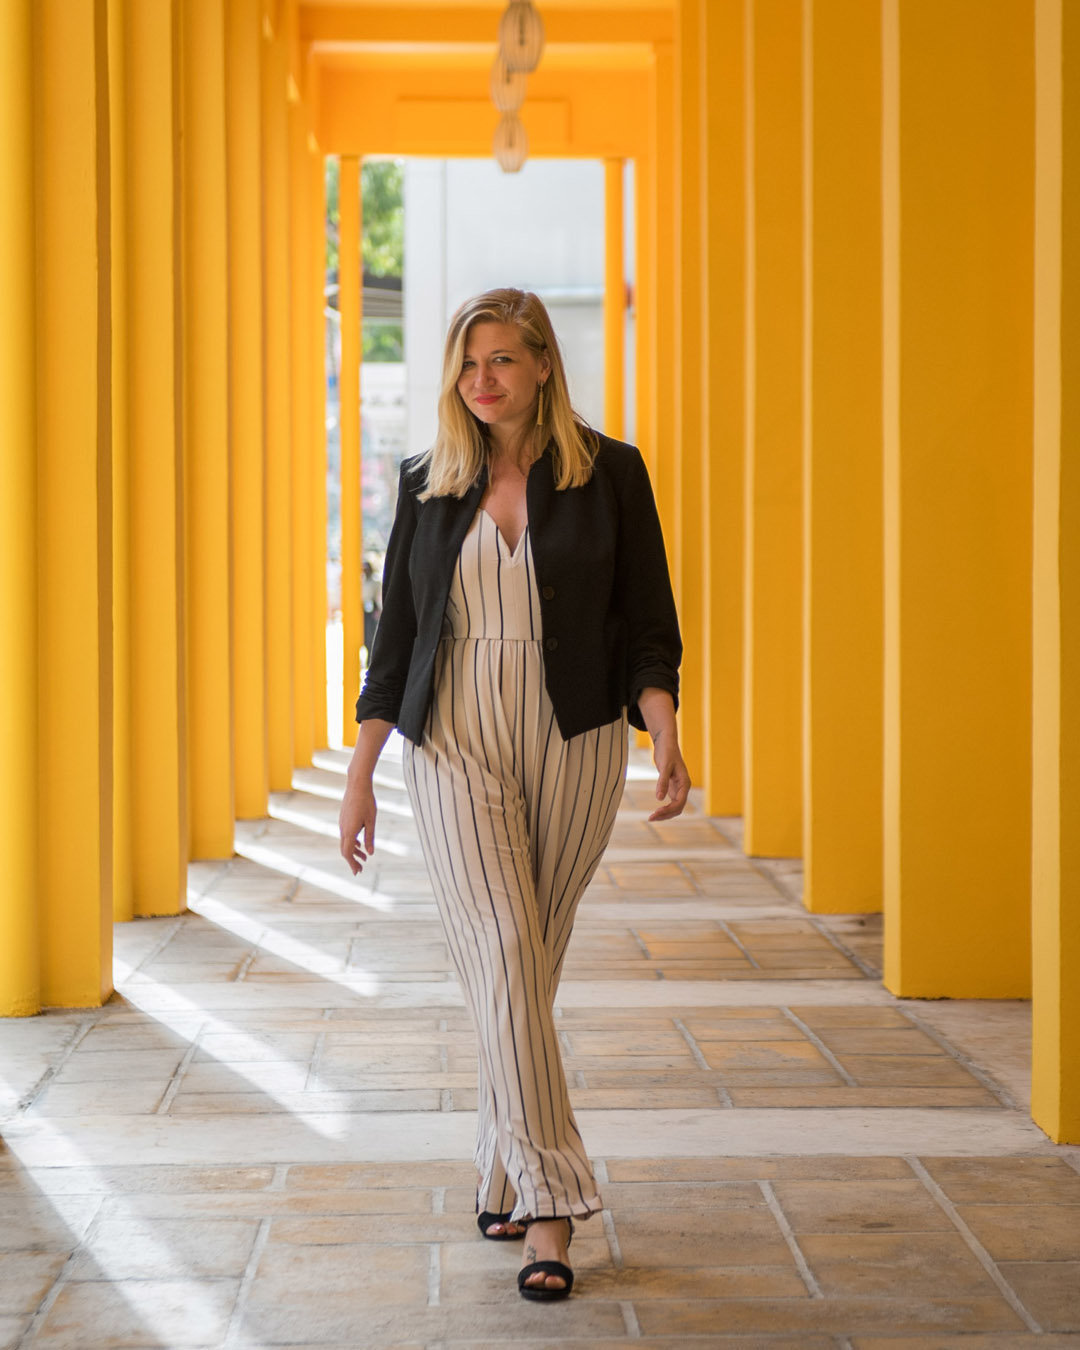 woman walking along yellow pillars